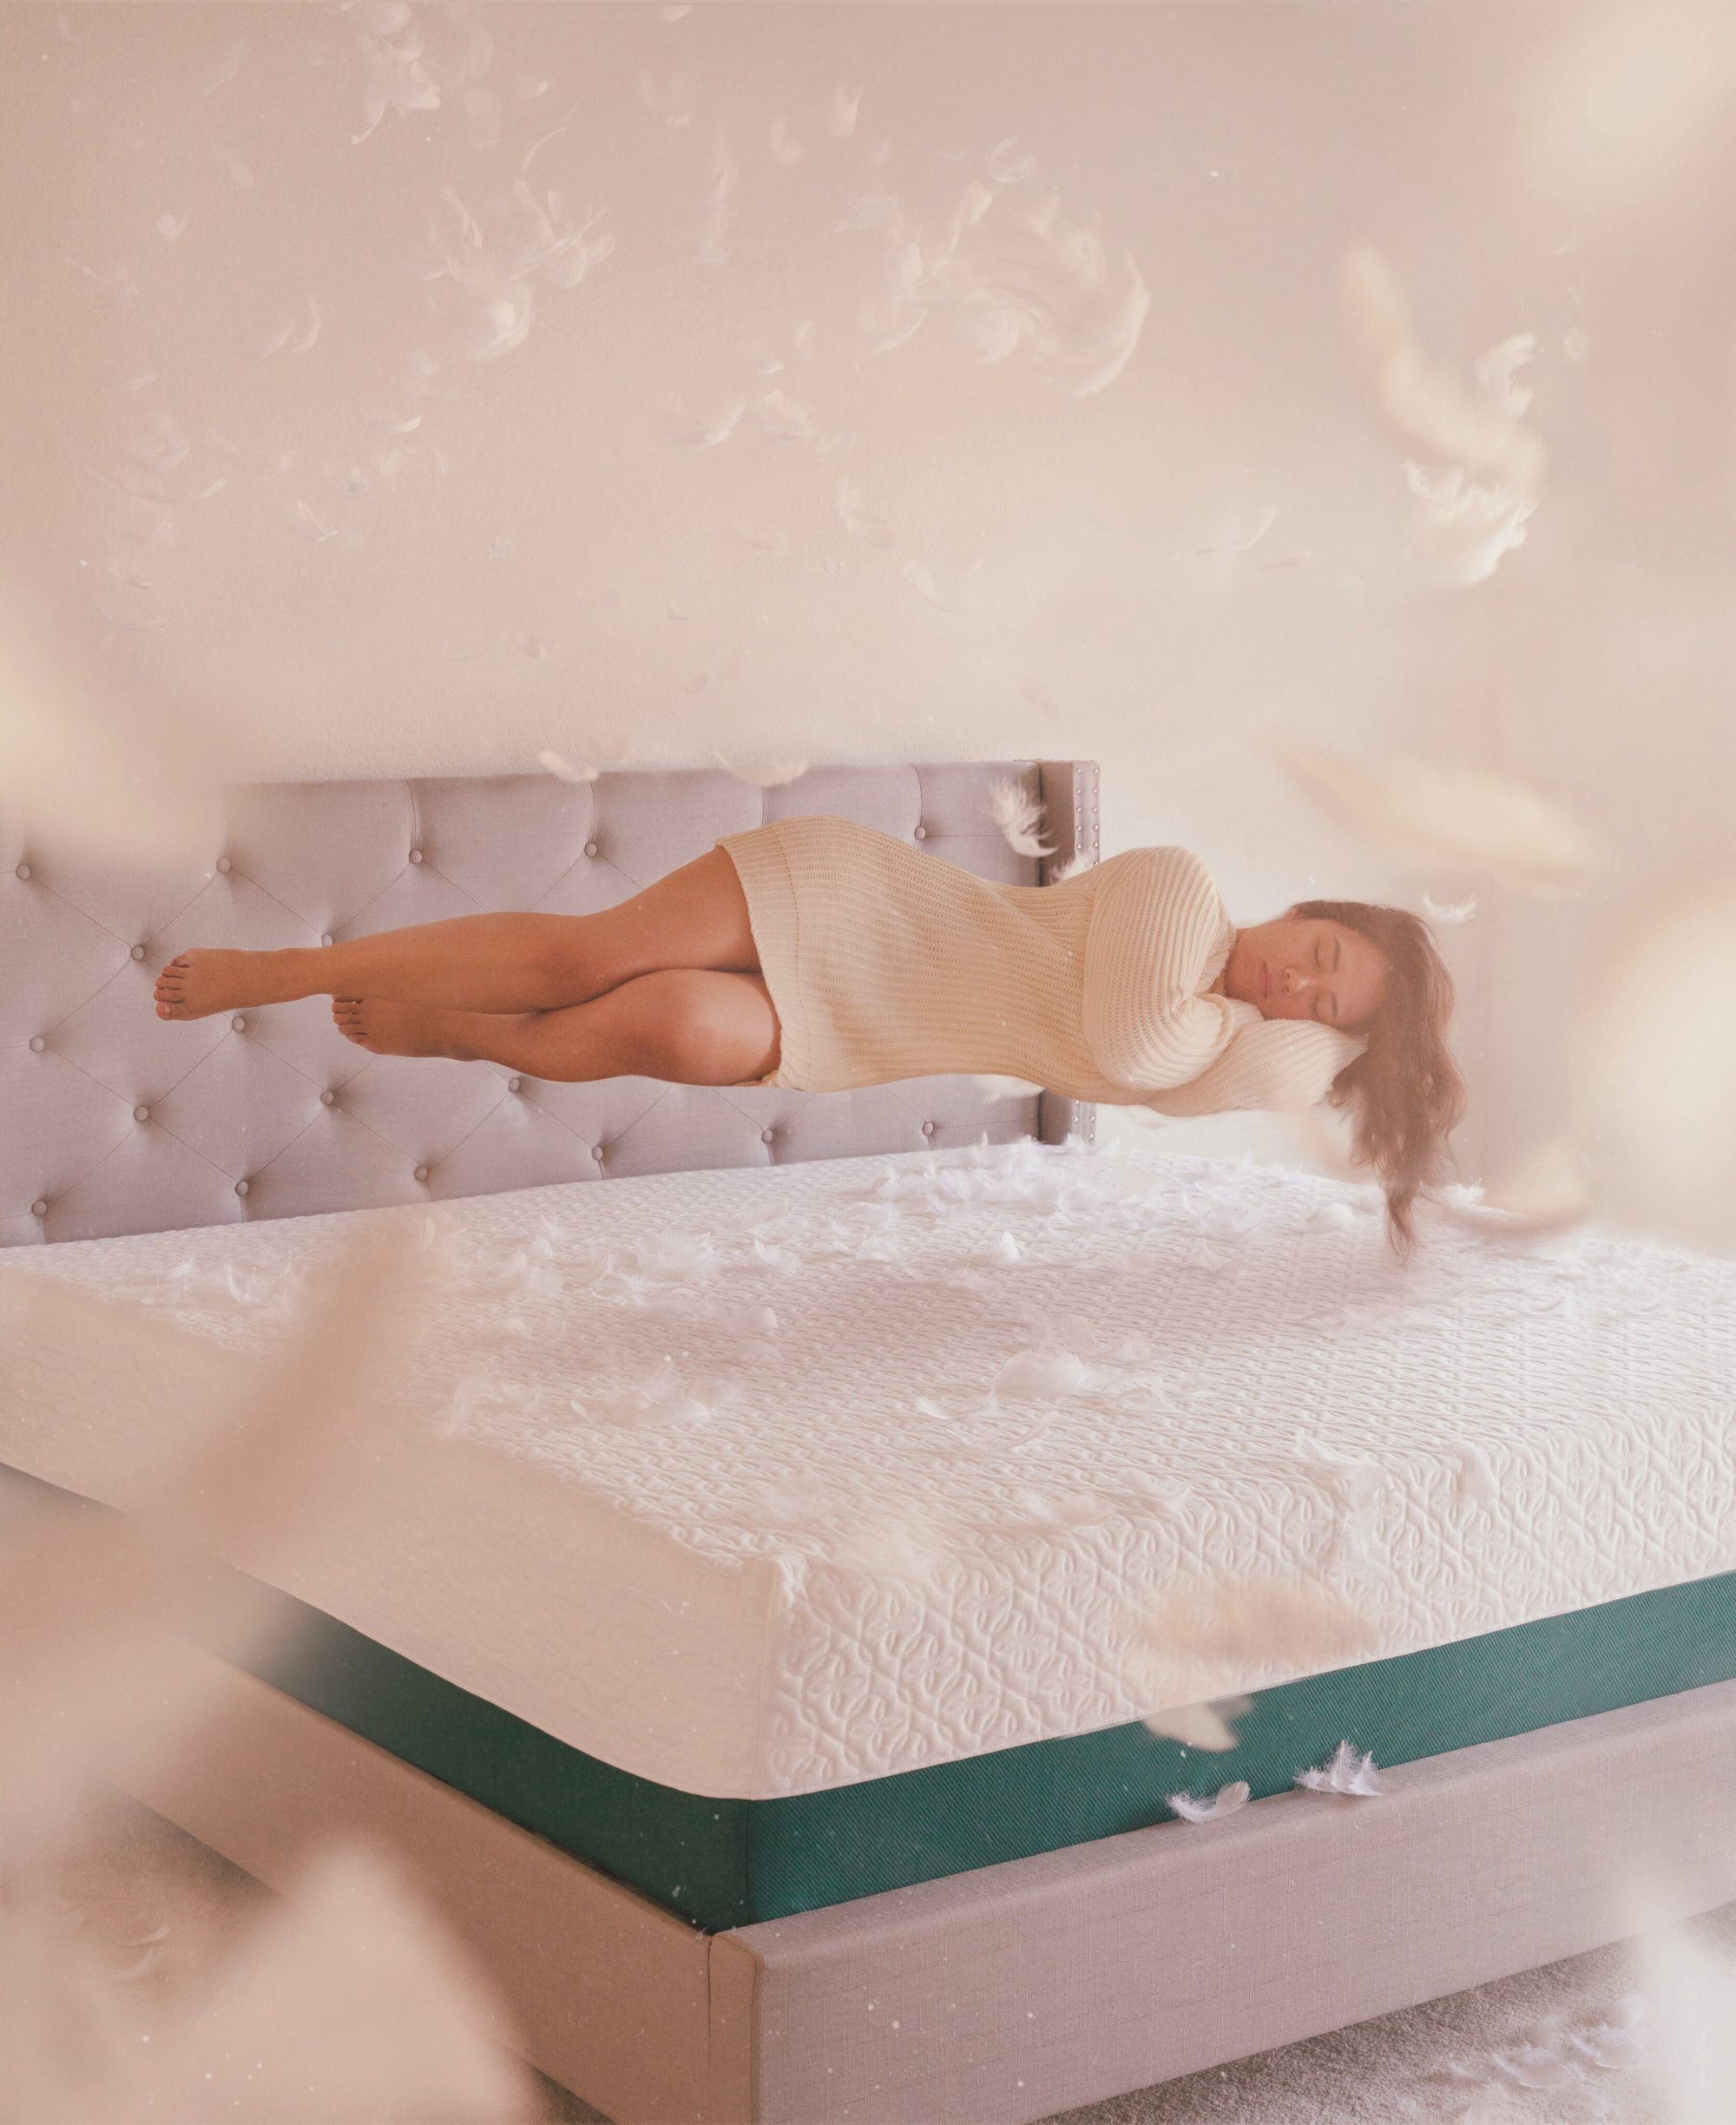 Get a mattress that makes you feel like you're on Cloud 9. My new Zinus mattress is so comfortable, I feel like I'm sleeping on air. - www.theballeronabudget.com